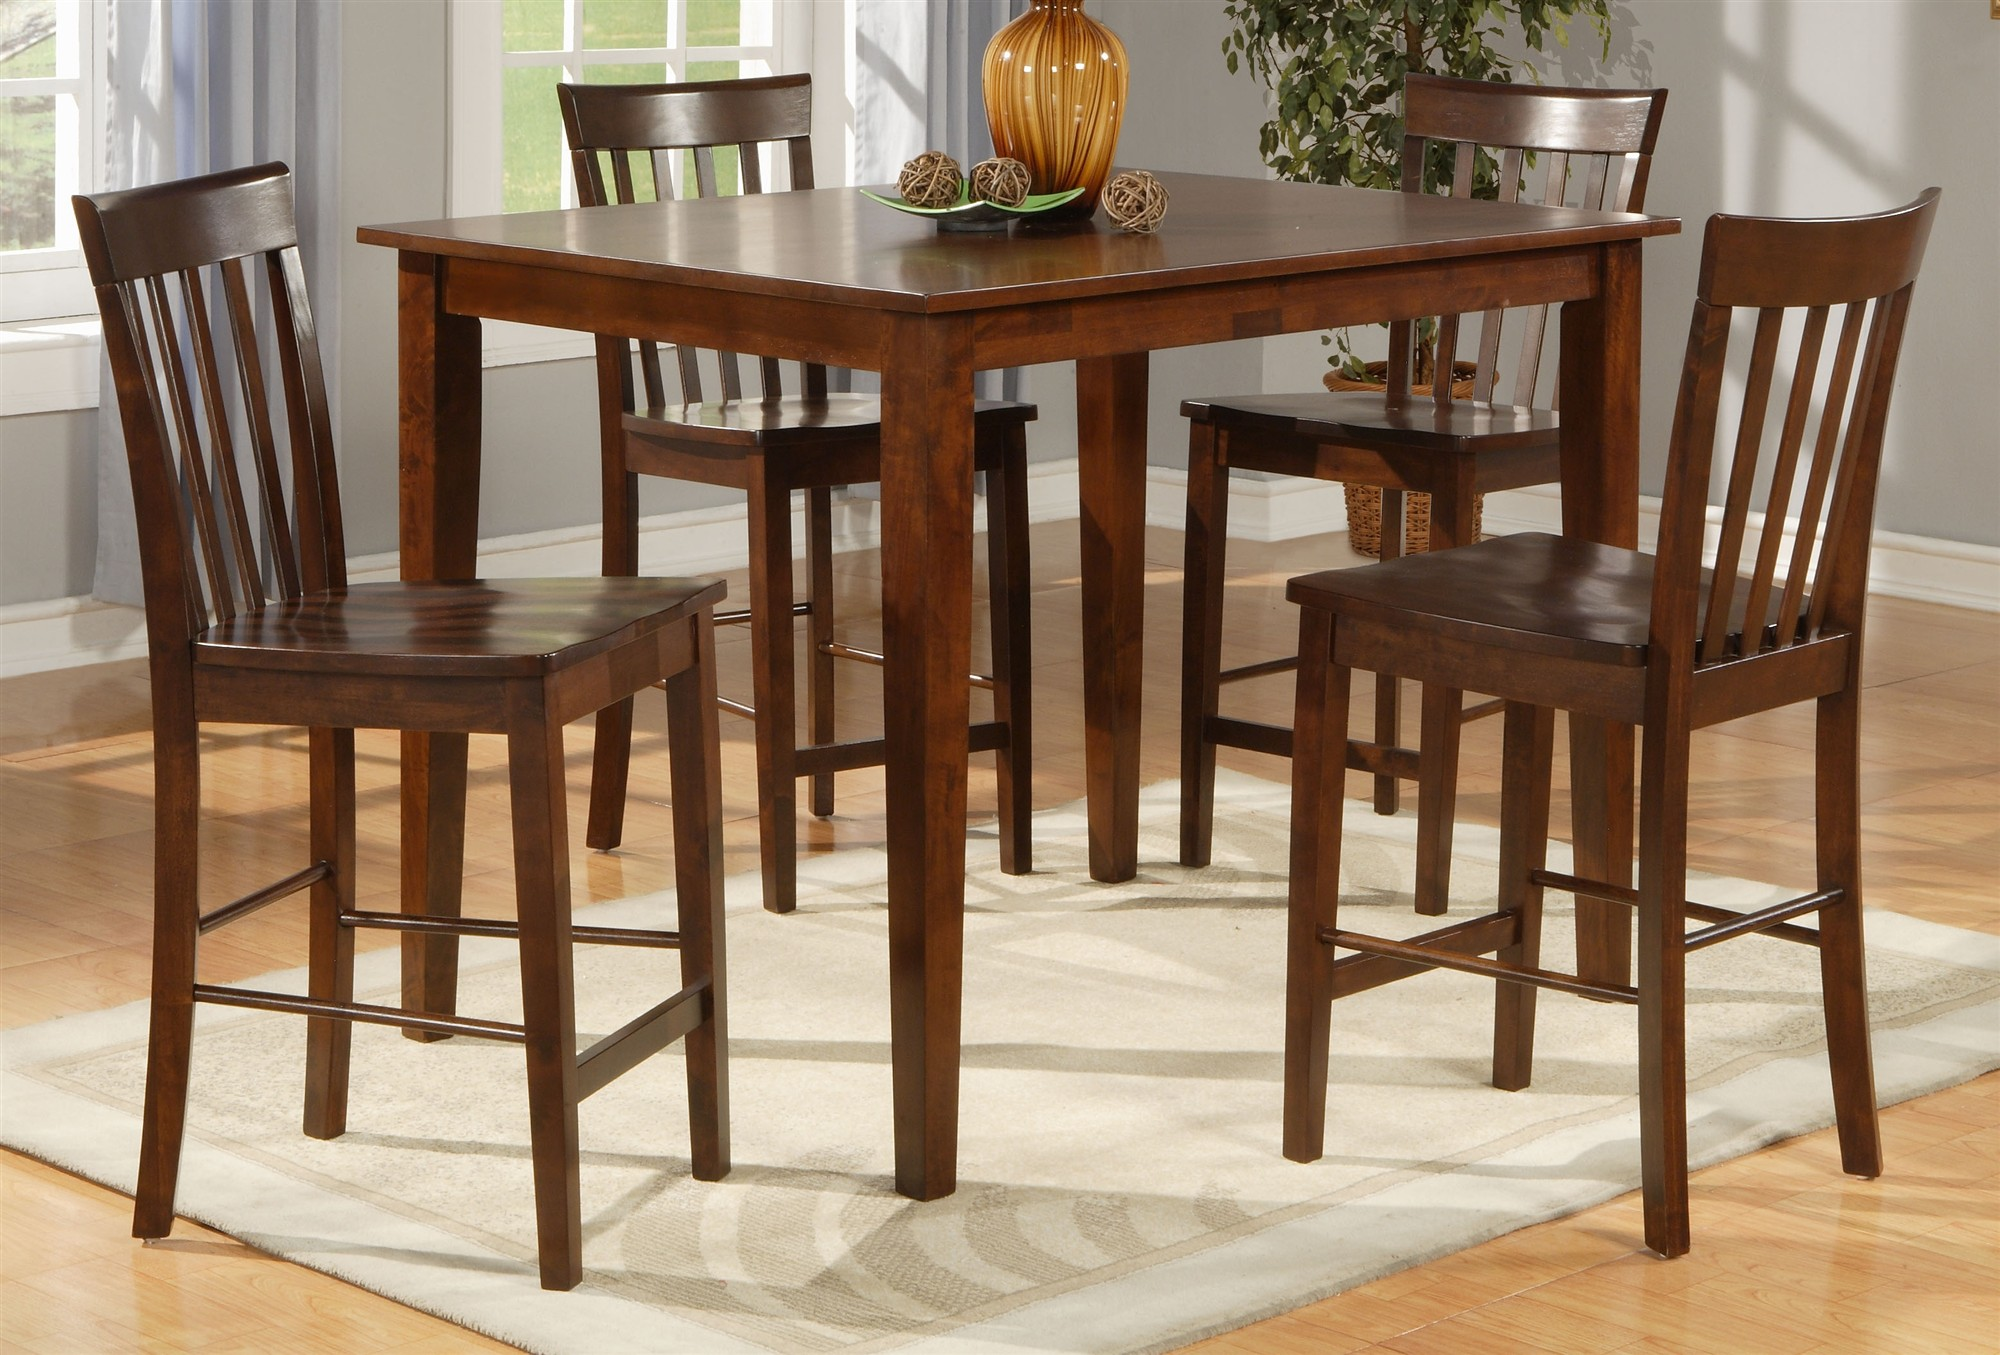 Square dining table for 4 homesfeed Dining room table and chairs